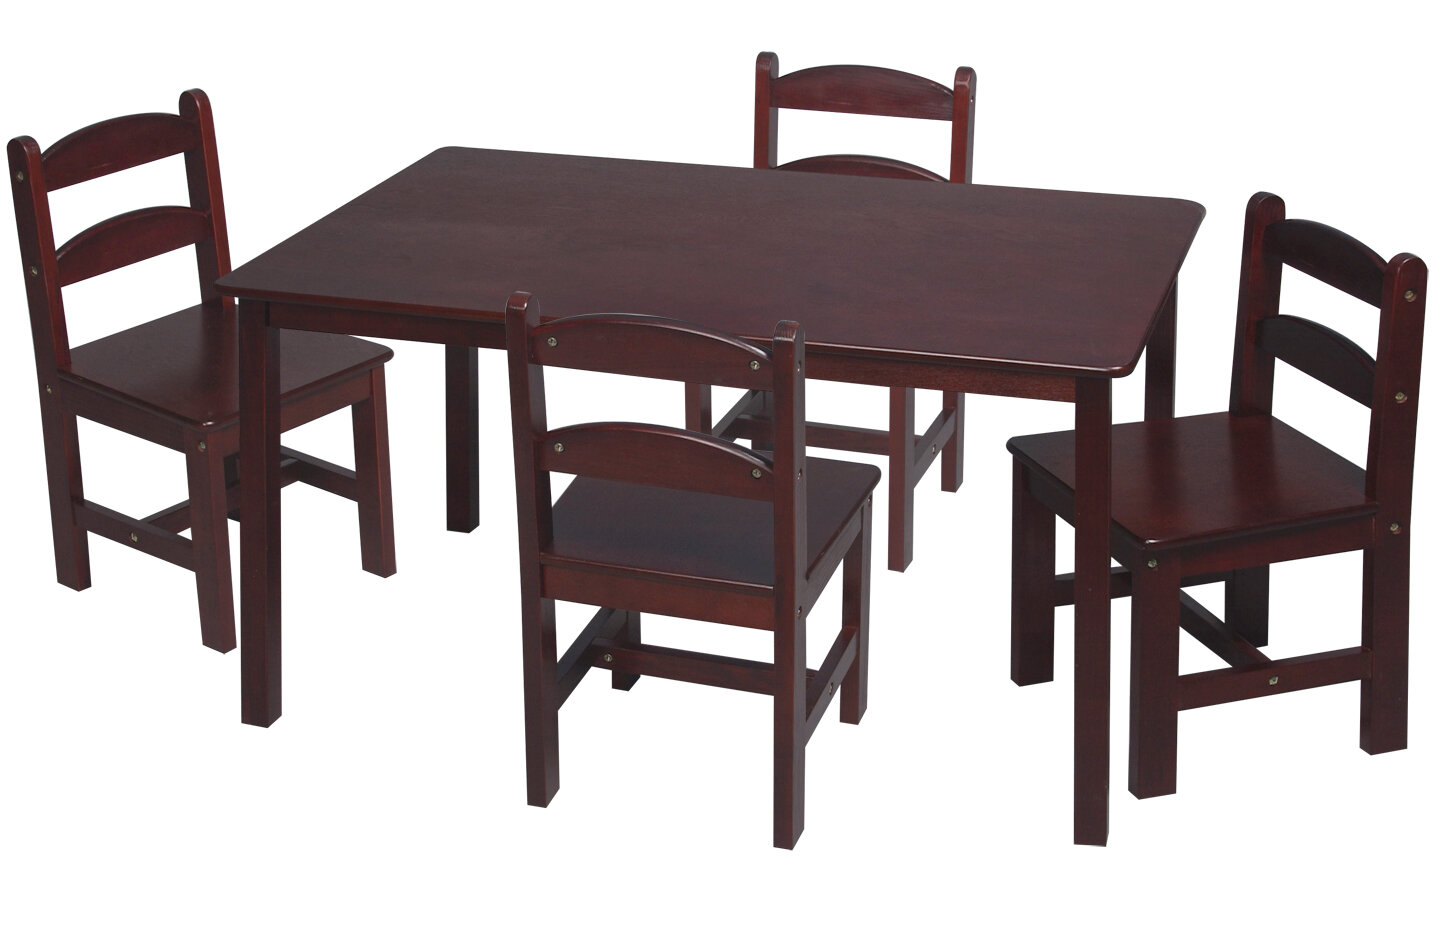 Kids 5 pc Table And Chair Set Childrens Furniture Rectangular Cherry Finish W